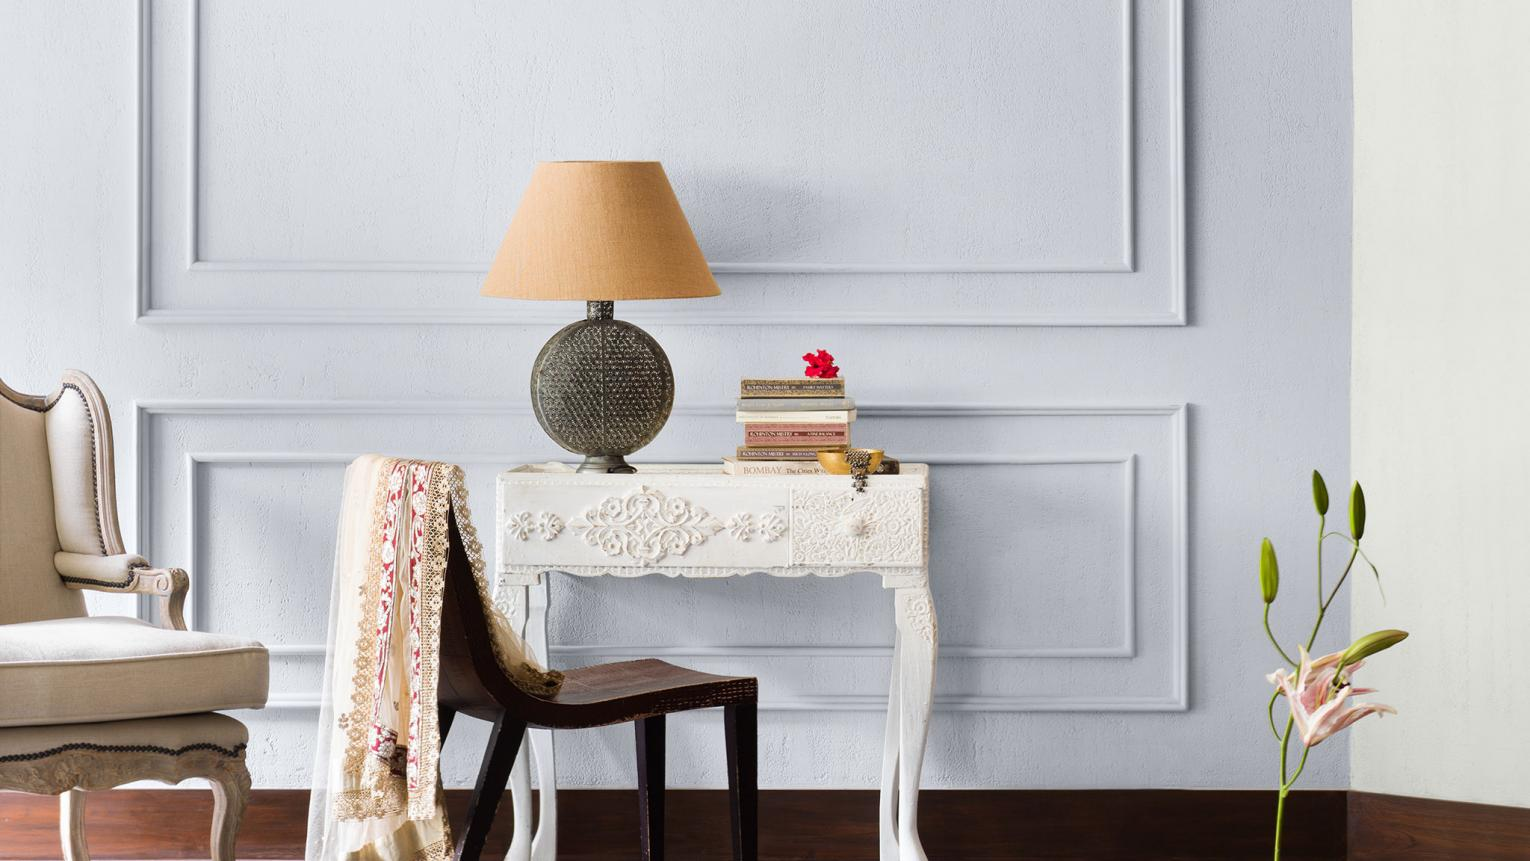 Warm white, cool white, or a mix of both? Discover when to paint warm and cool whites, and how to mix them for an elegantly understated look.